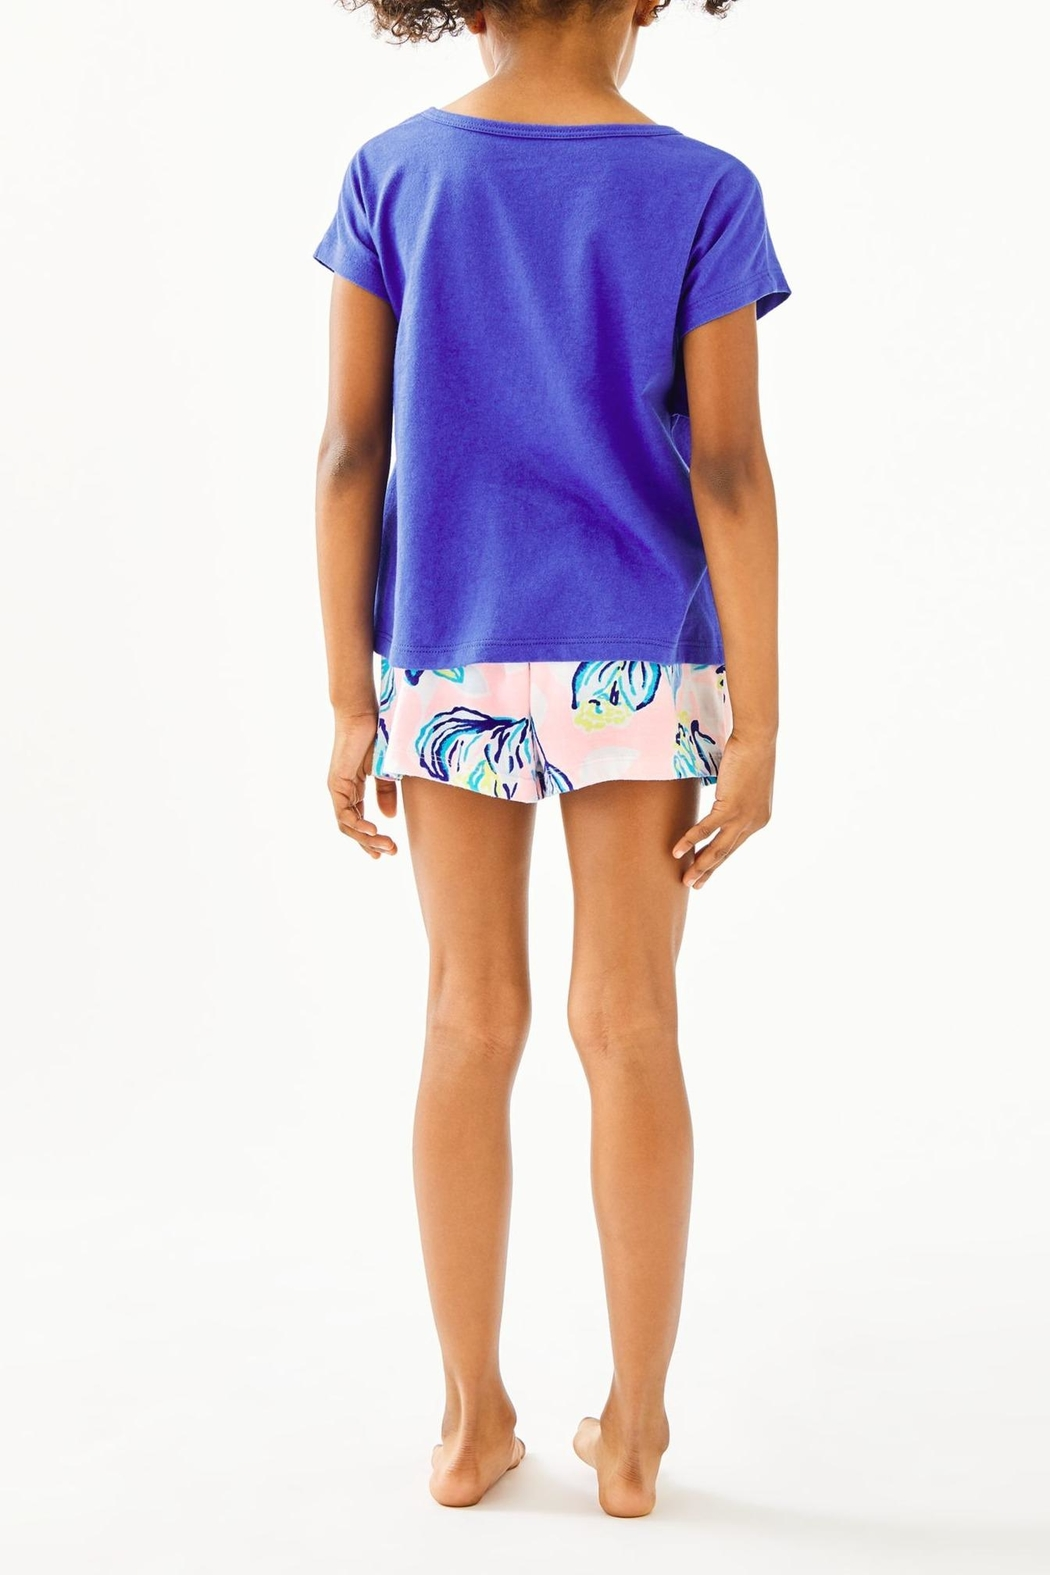 Lilly Pulitzer Girls Petal Top - Front Full Image